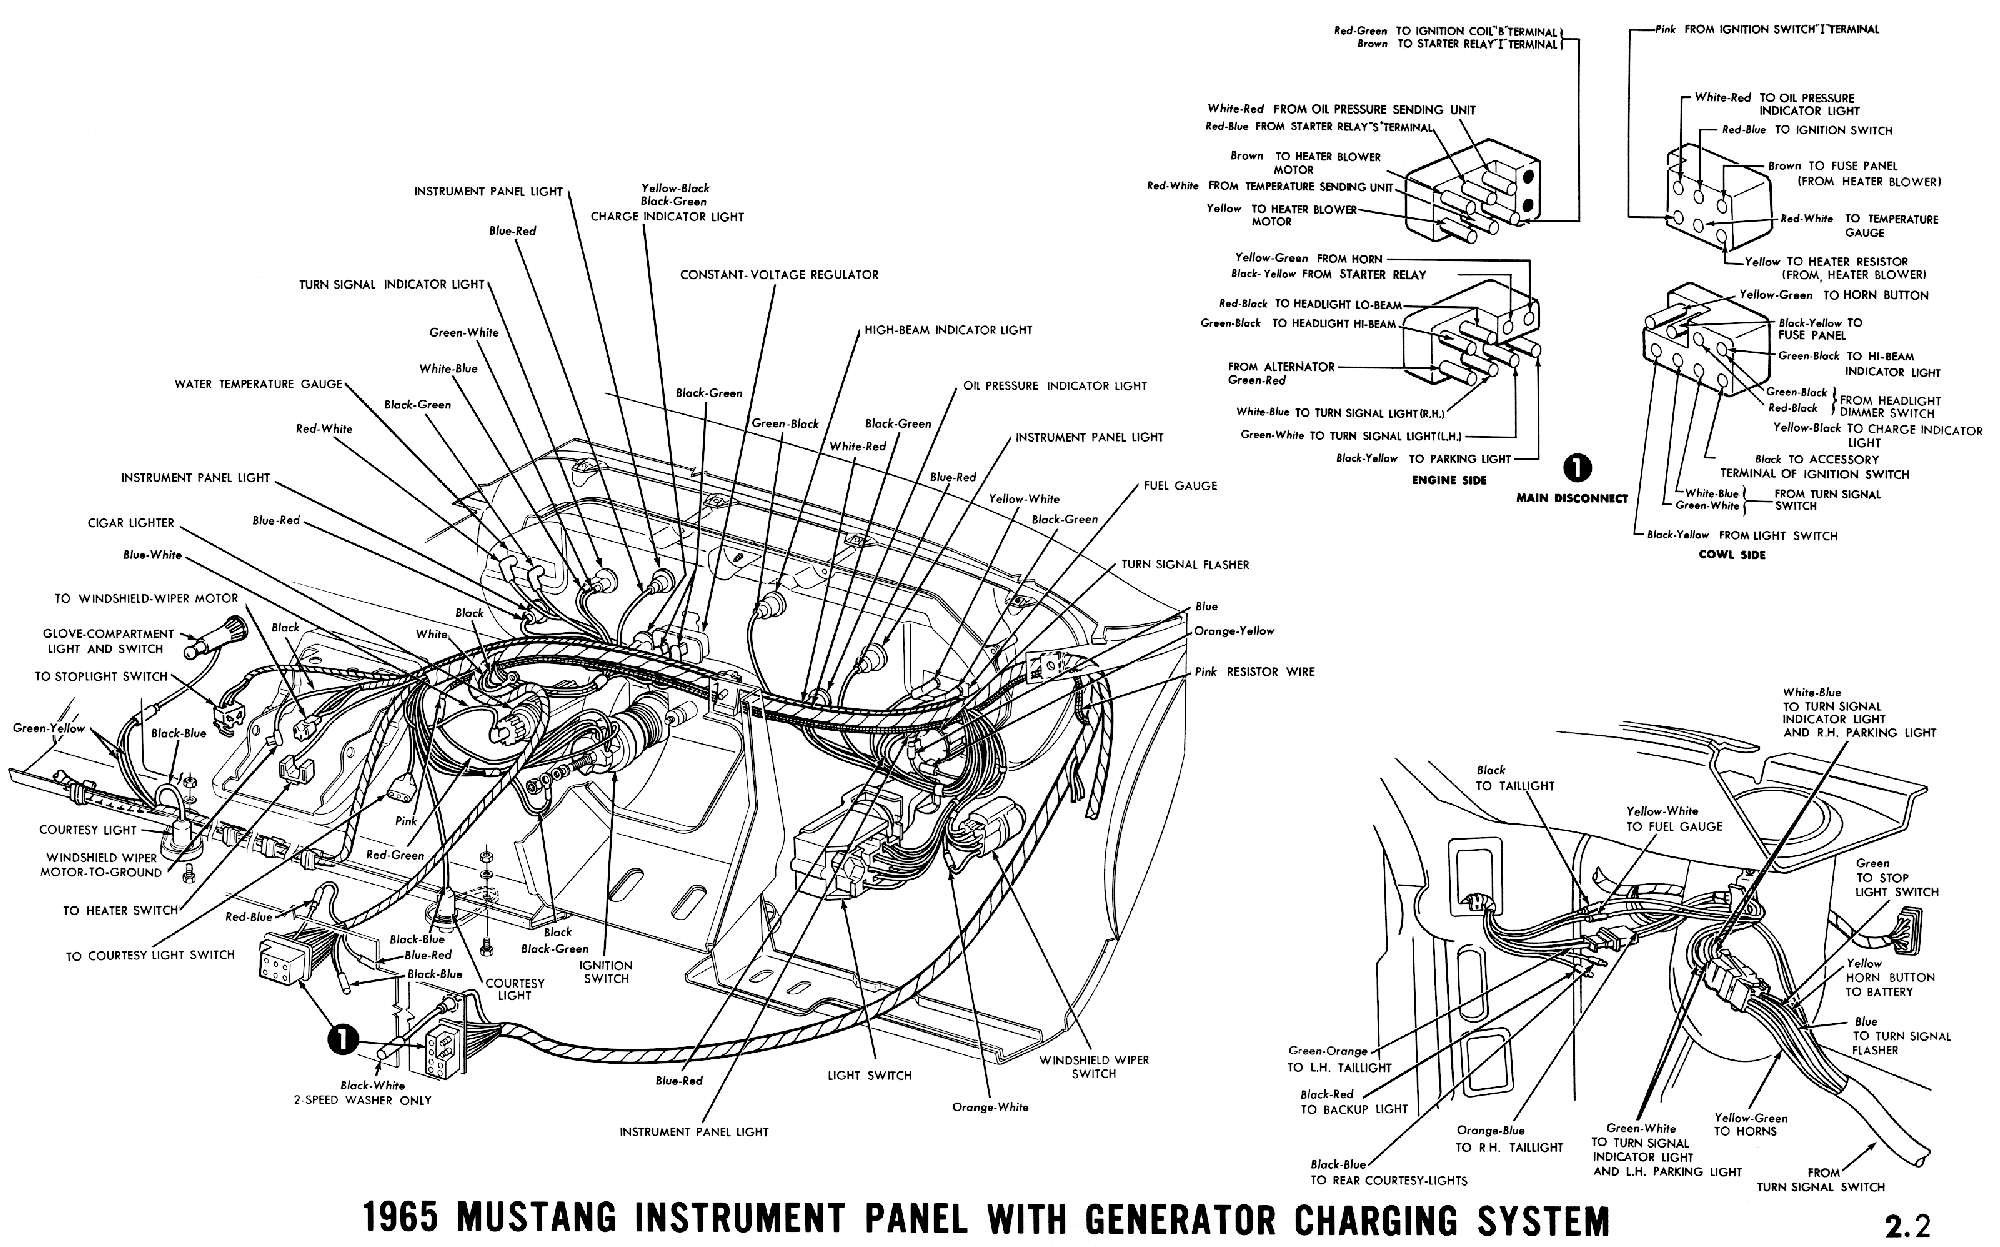 Mustang Wiring Harness Diagram - Wiring Diagrams Hubs - Mustang Wiring Harness Diagram